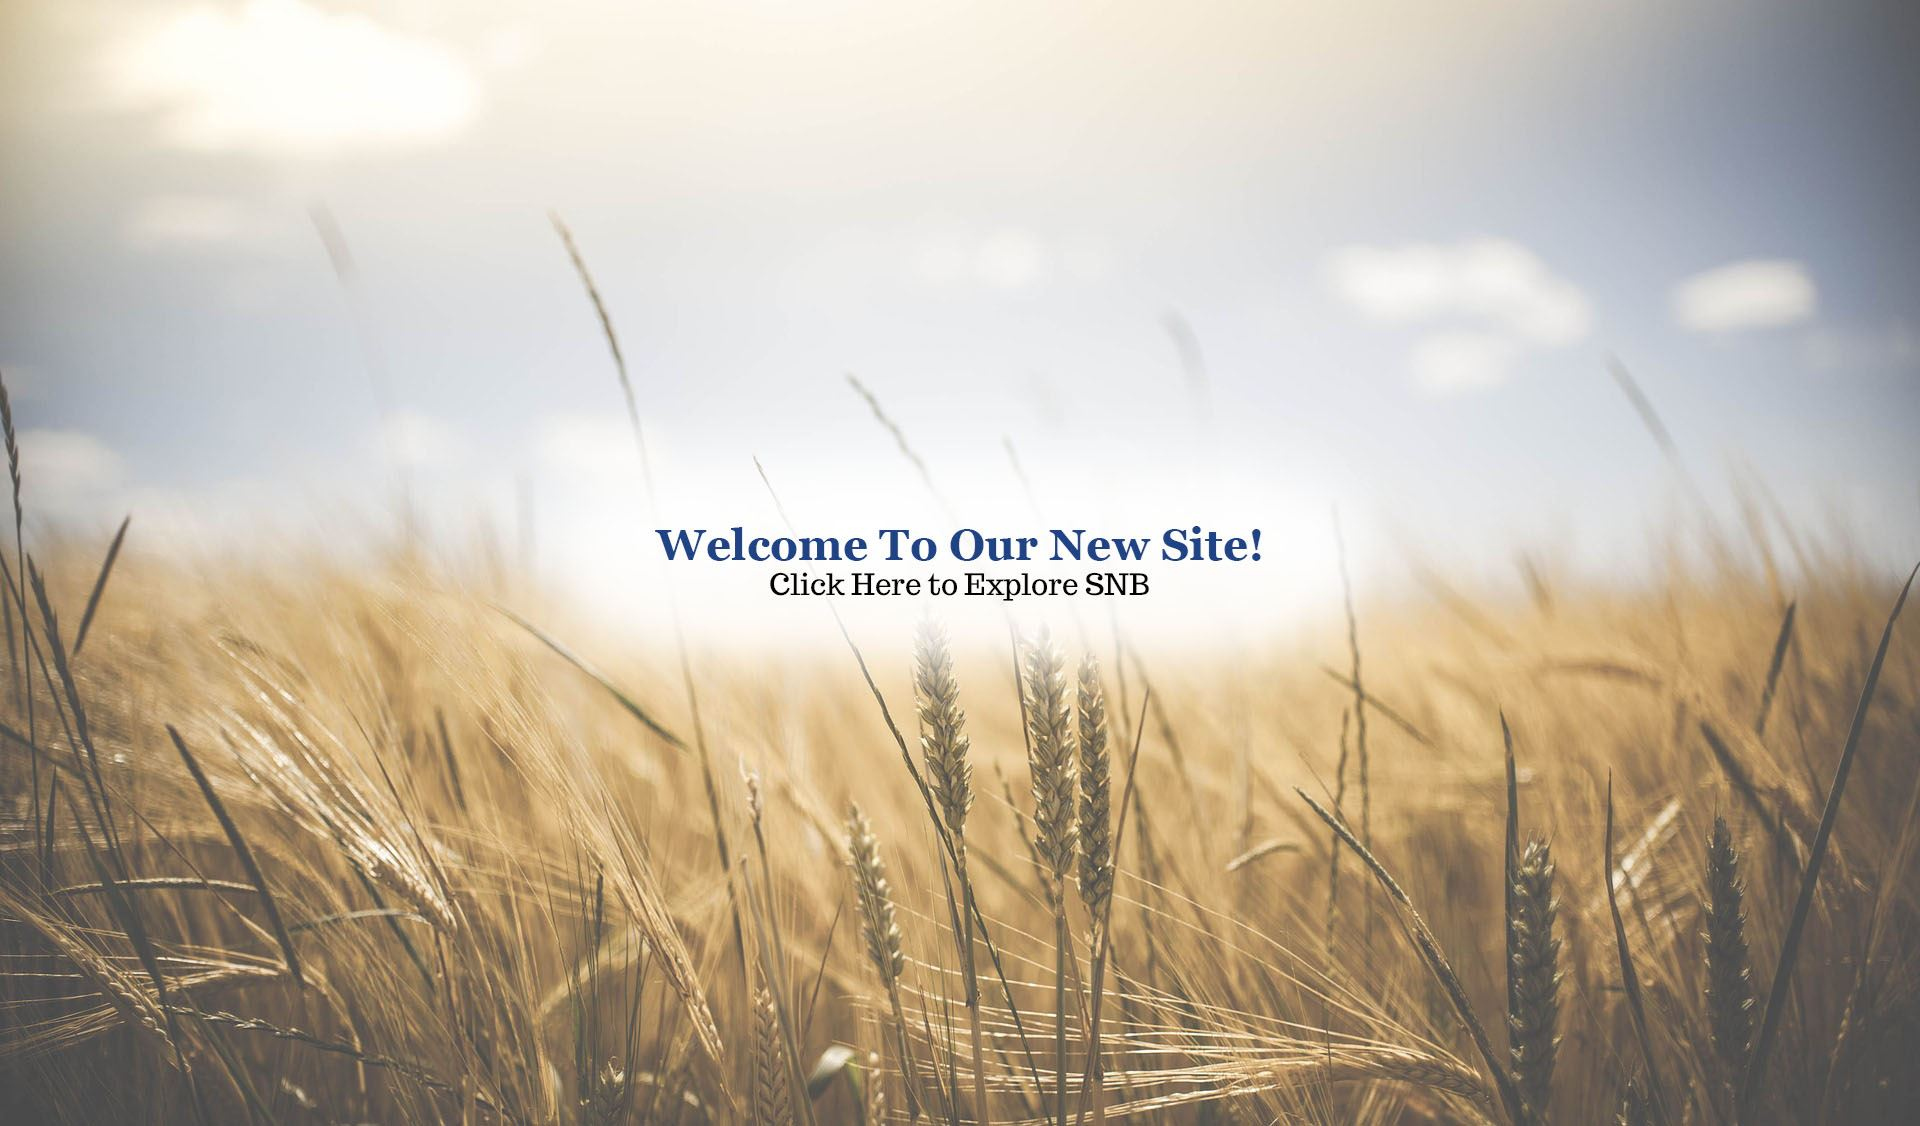 Welcome to our site main promo